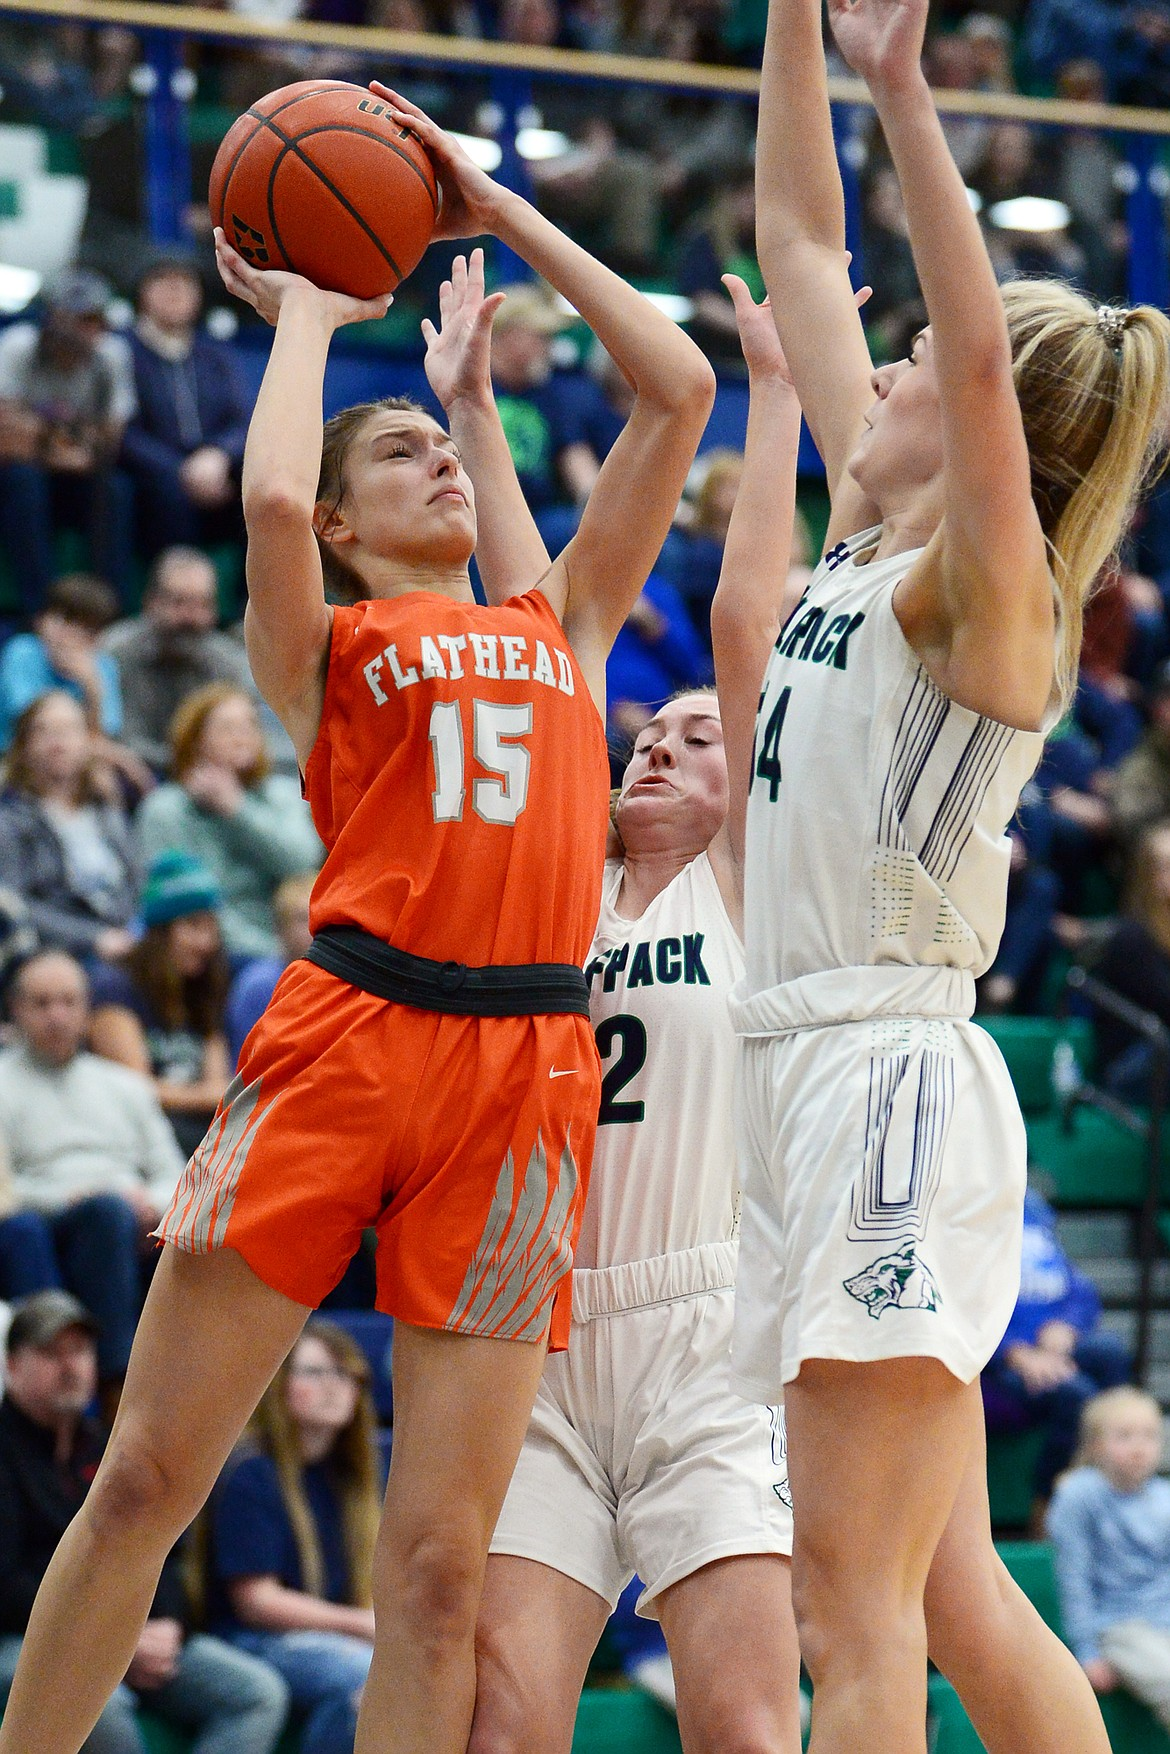 Flathead's Clare Converse (15) looks to shoot against Glacier's Kenzie Williams (12) and Aubrie Rademacher (14) during a crosstown matchup at Glacier High School on Friday. (Casey Kreider/Daily Inter Lake)